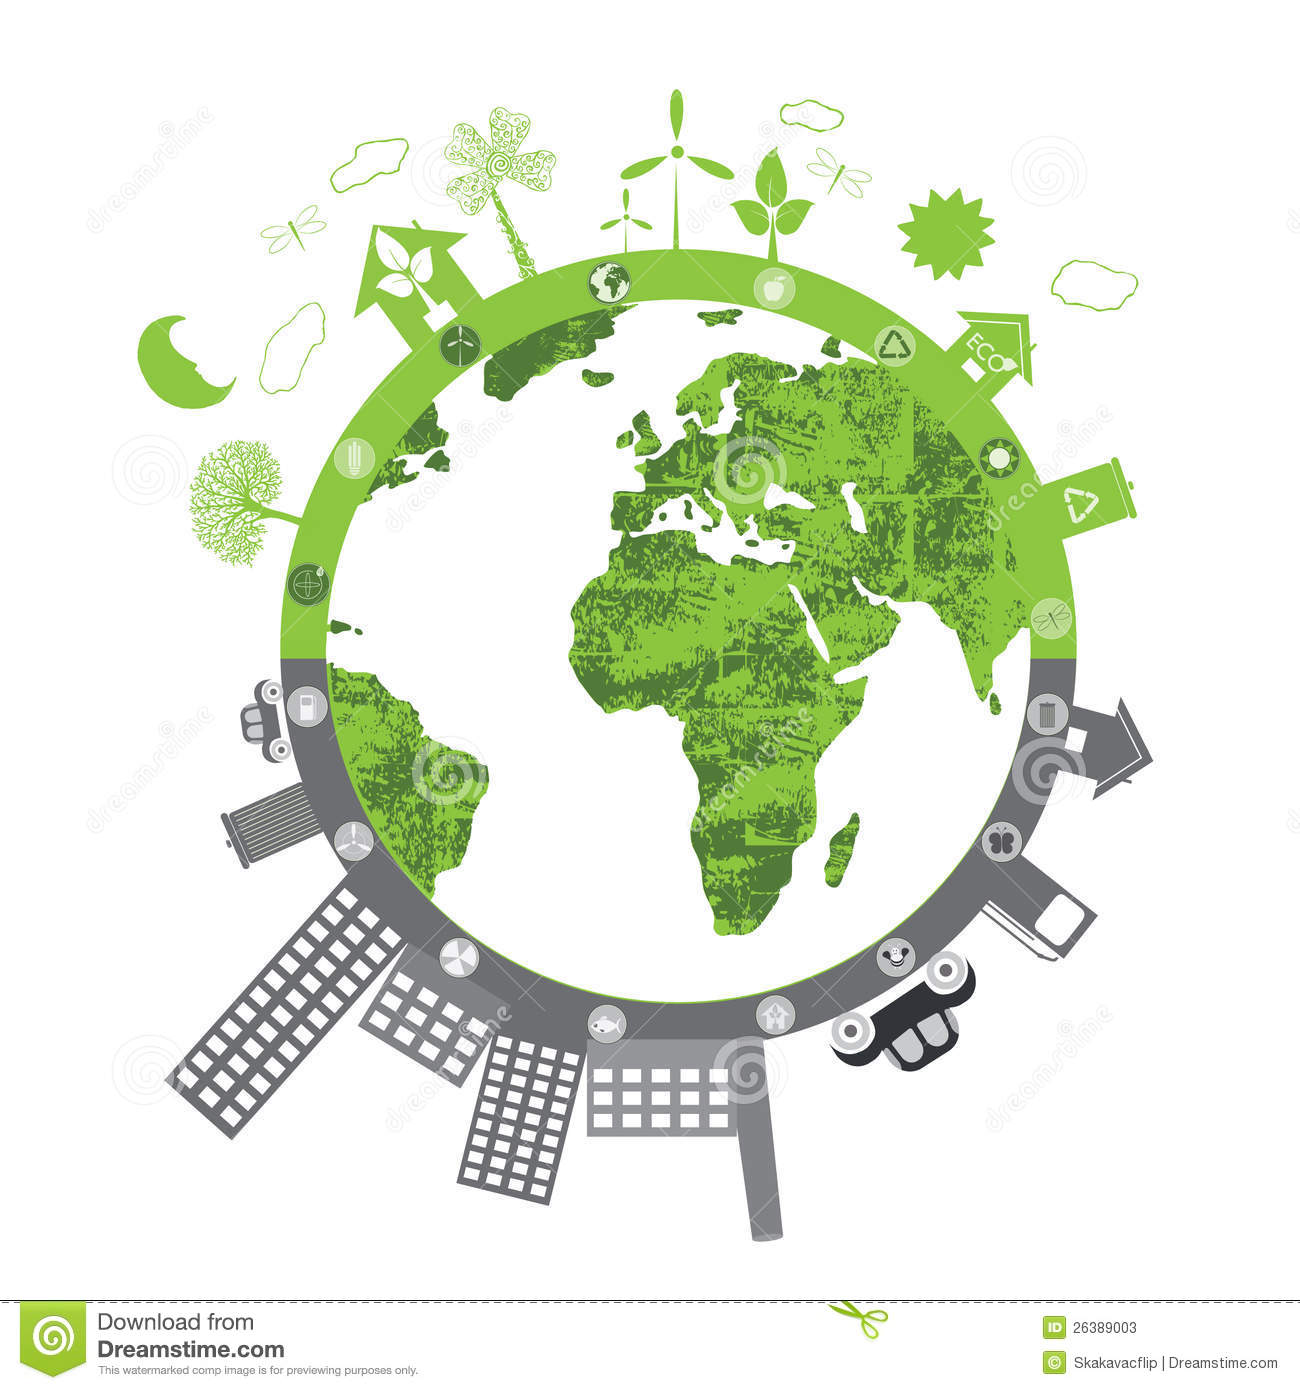 Illustration of green life vs. pollution on white background.